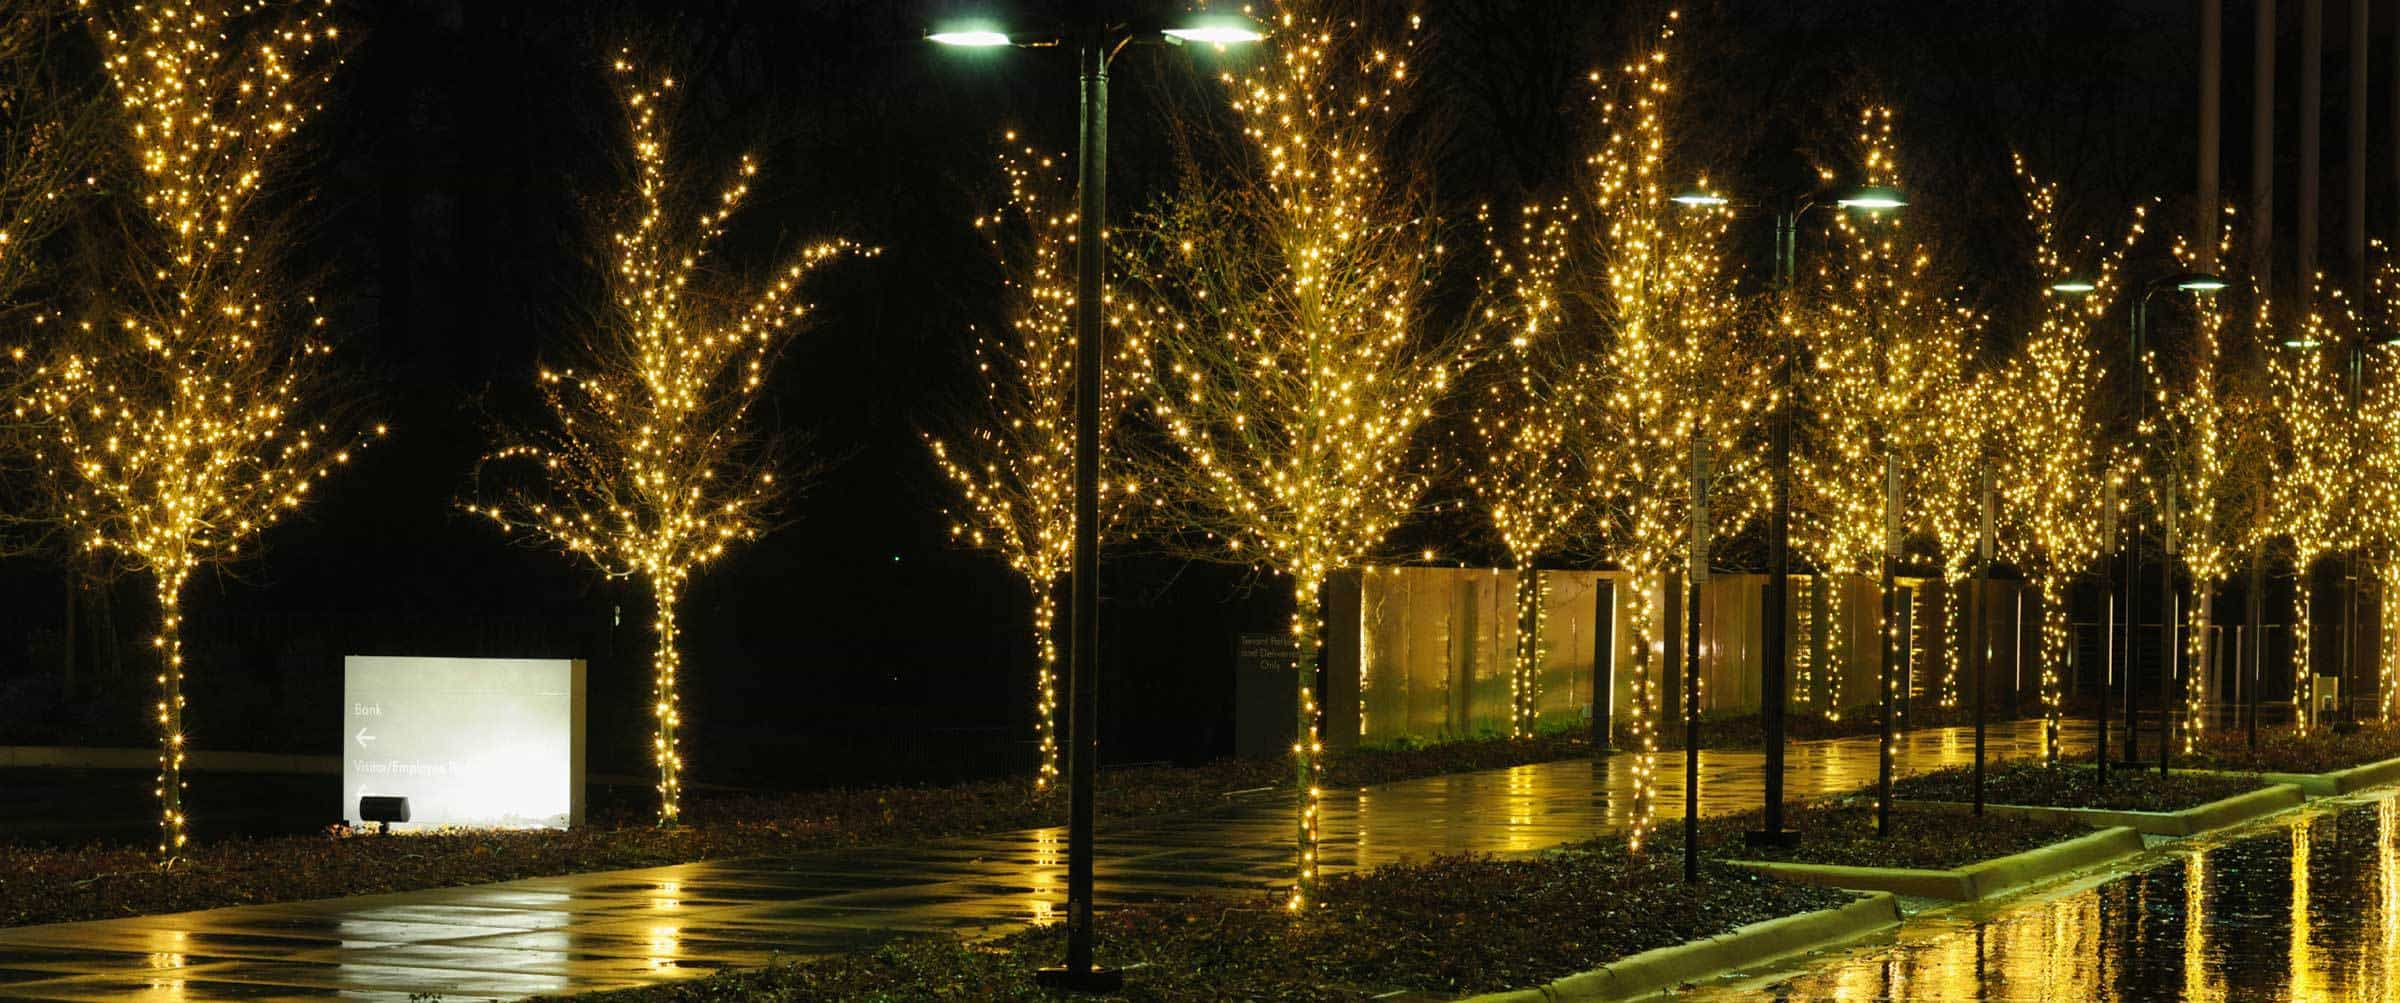 We Hang Christmas Lights Was Started In 1997 And Specialize Residential Commercial Light Installation Modesto Ca Seasonal Displays